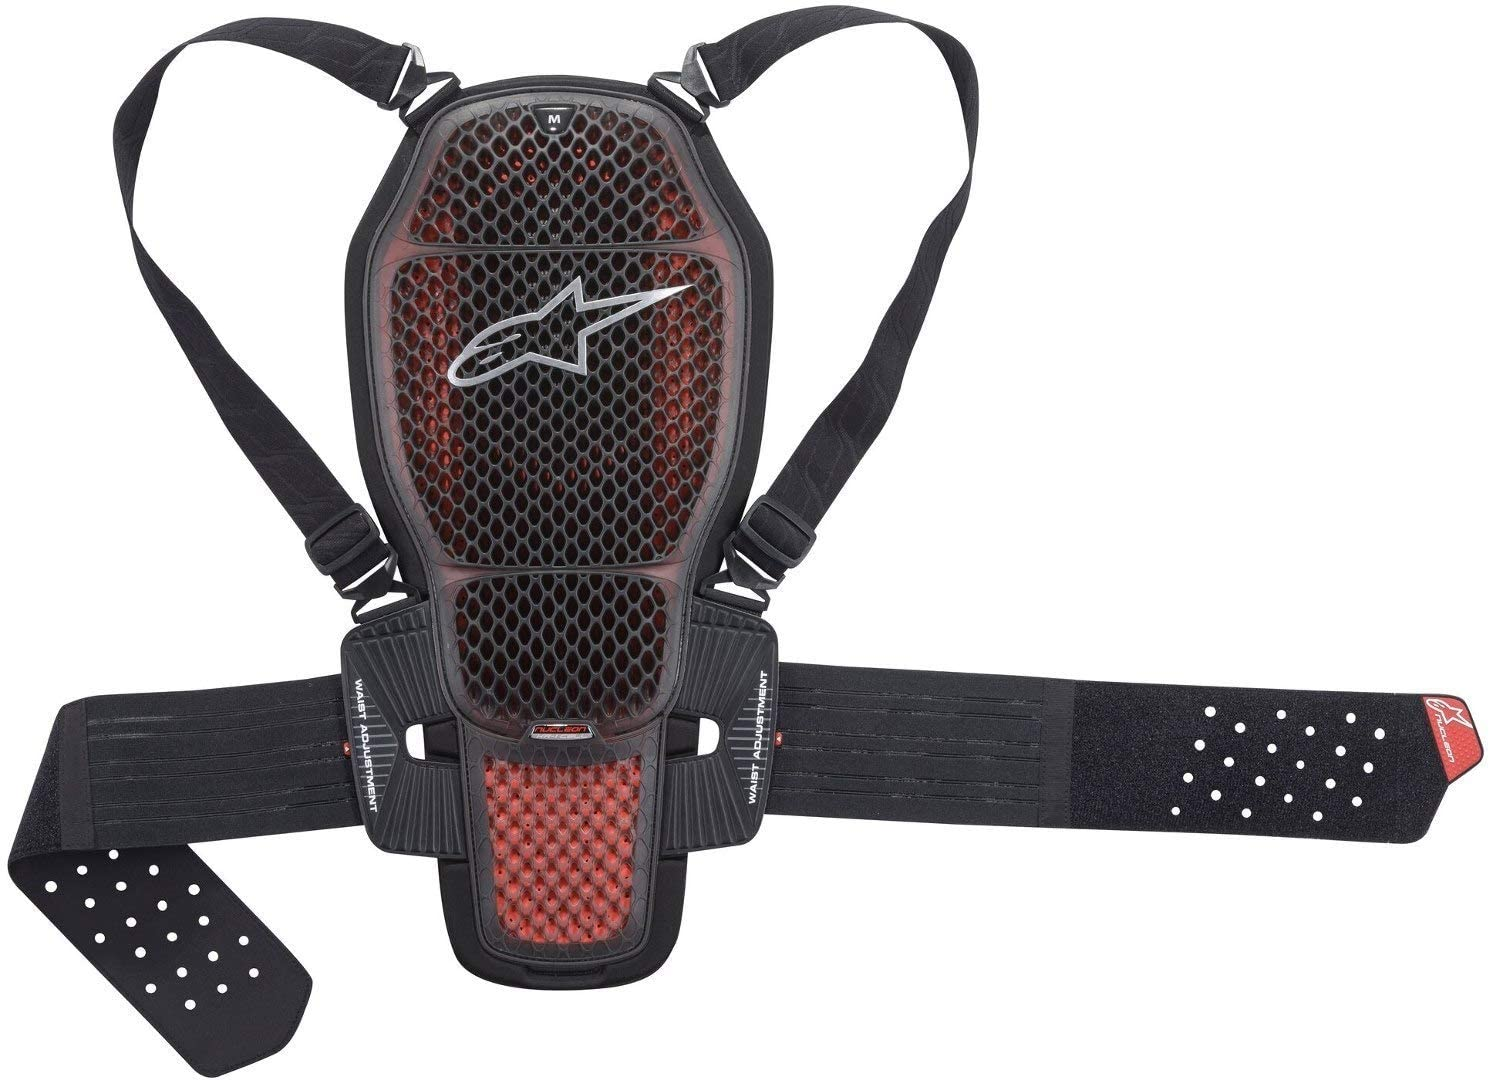 Alpinestars Nucleon KR-1 Cell Motorcycle Back Protector, Black/Red, X-Large